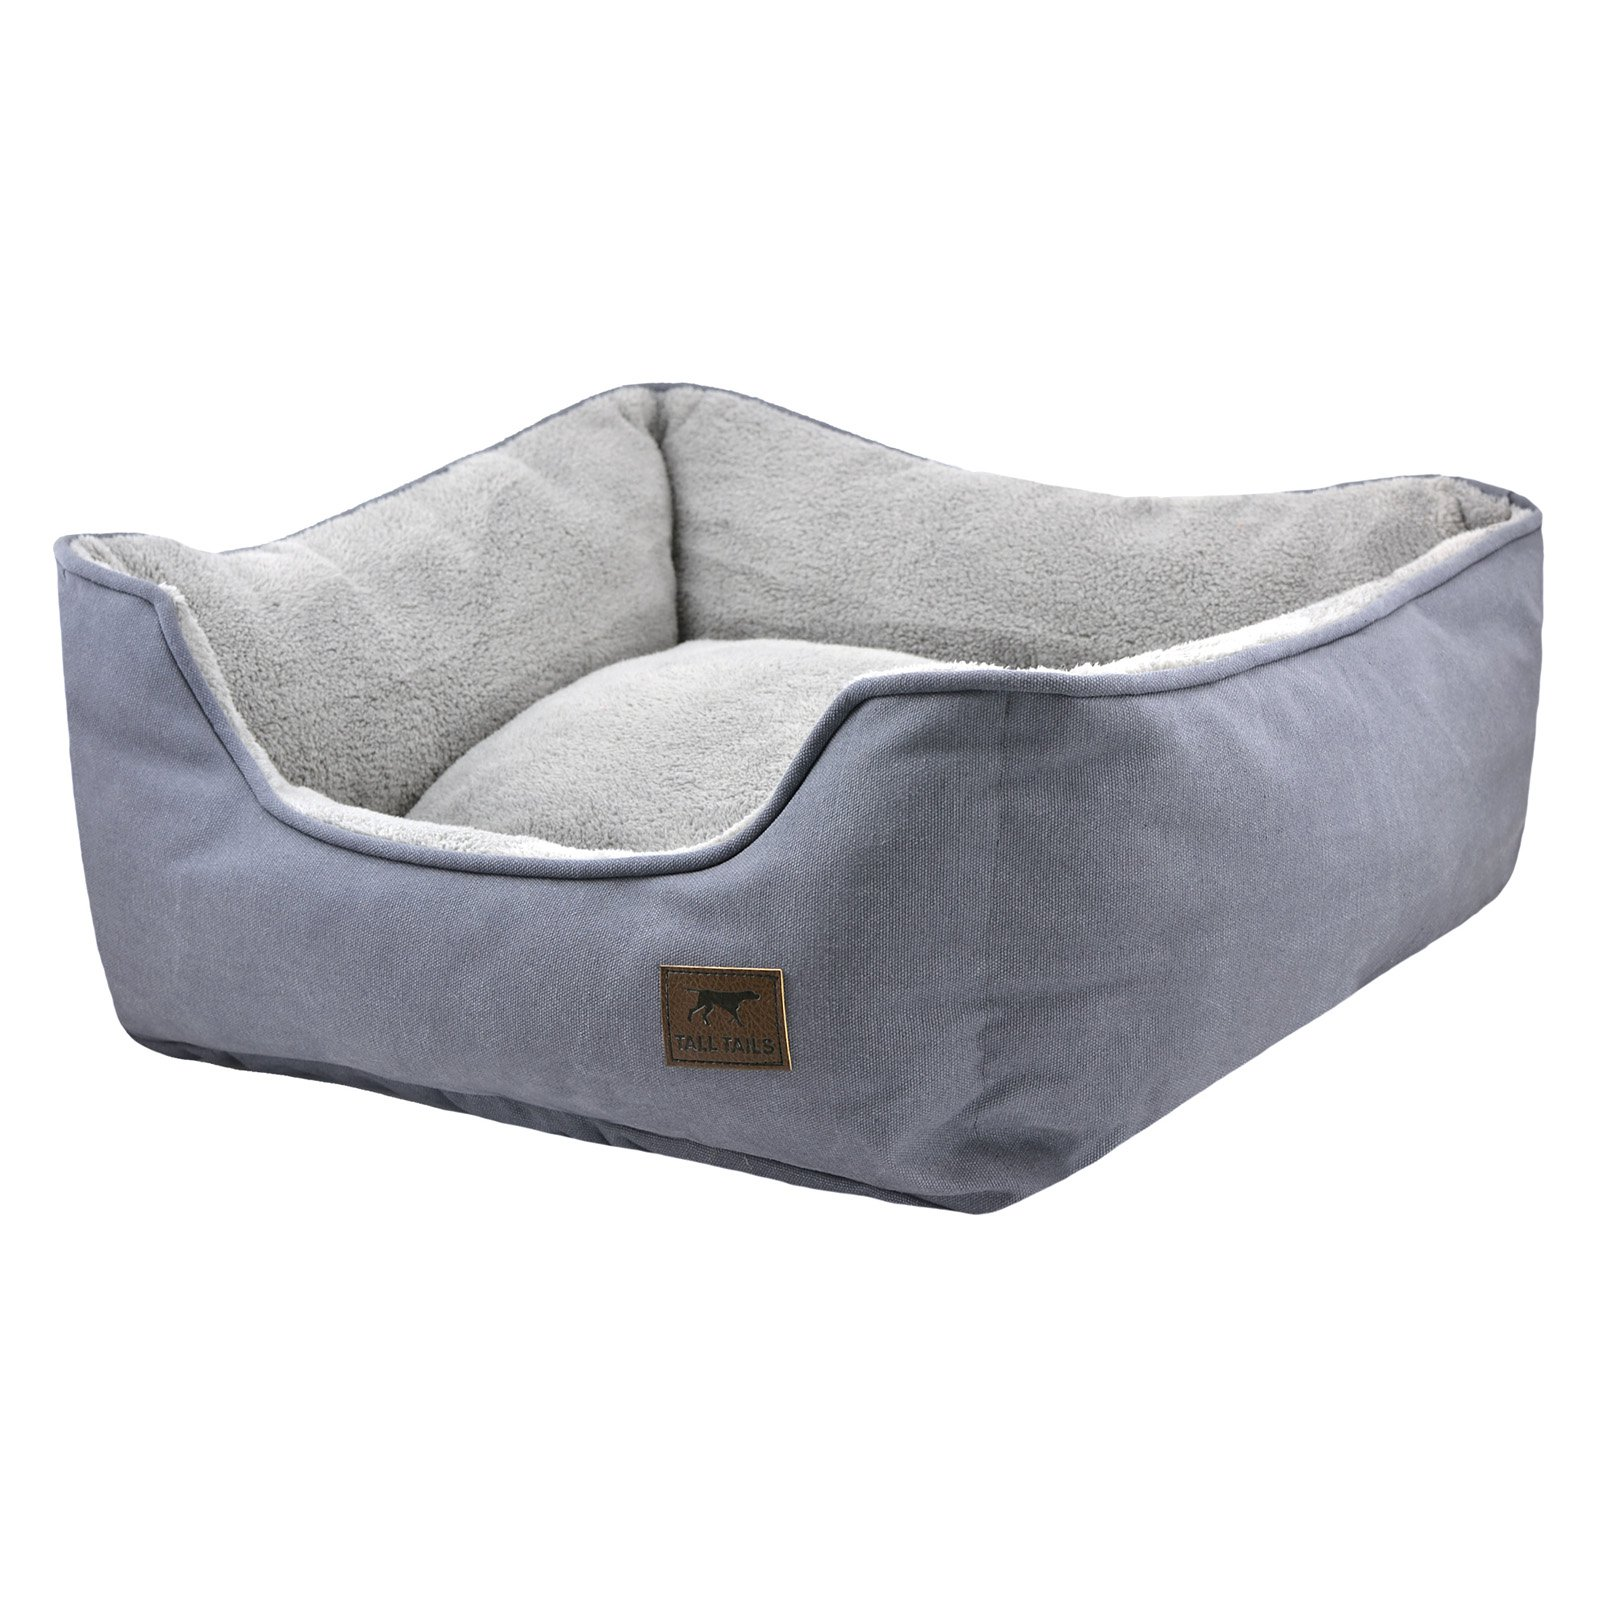 Tall Tails Dream Chaser Charcoal Bolster Dog Bed, Medium